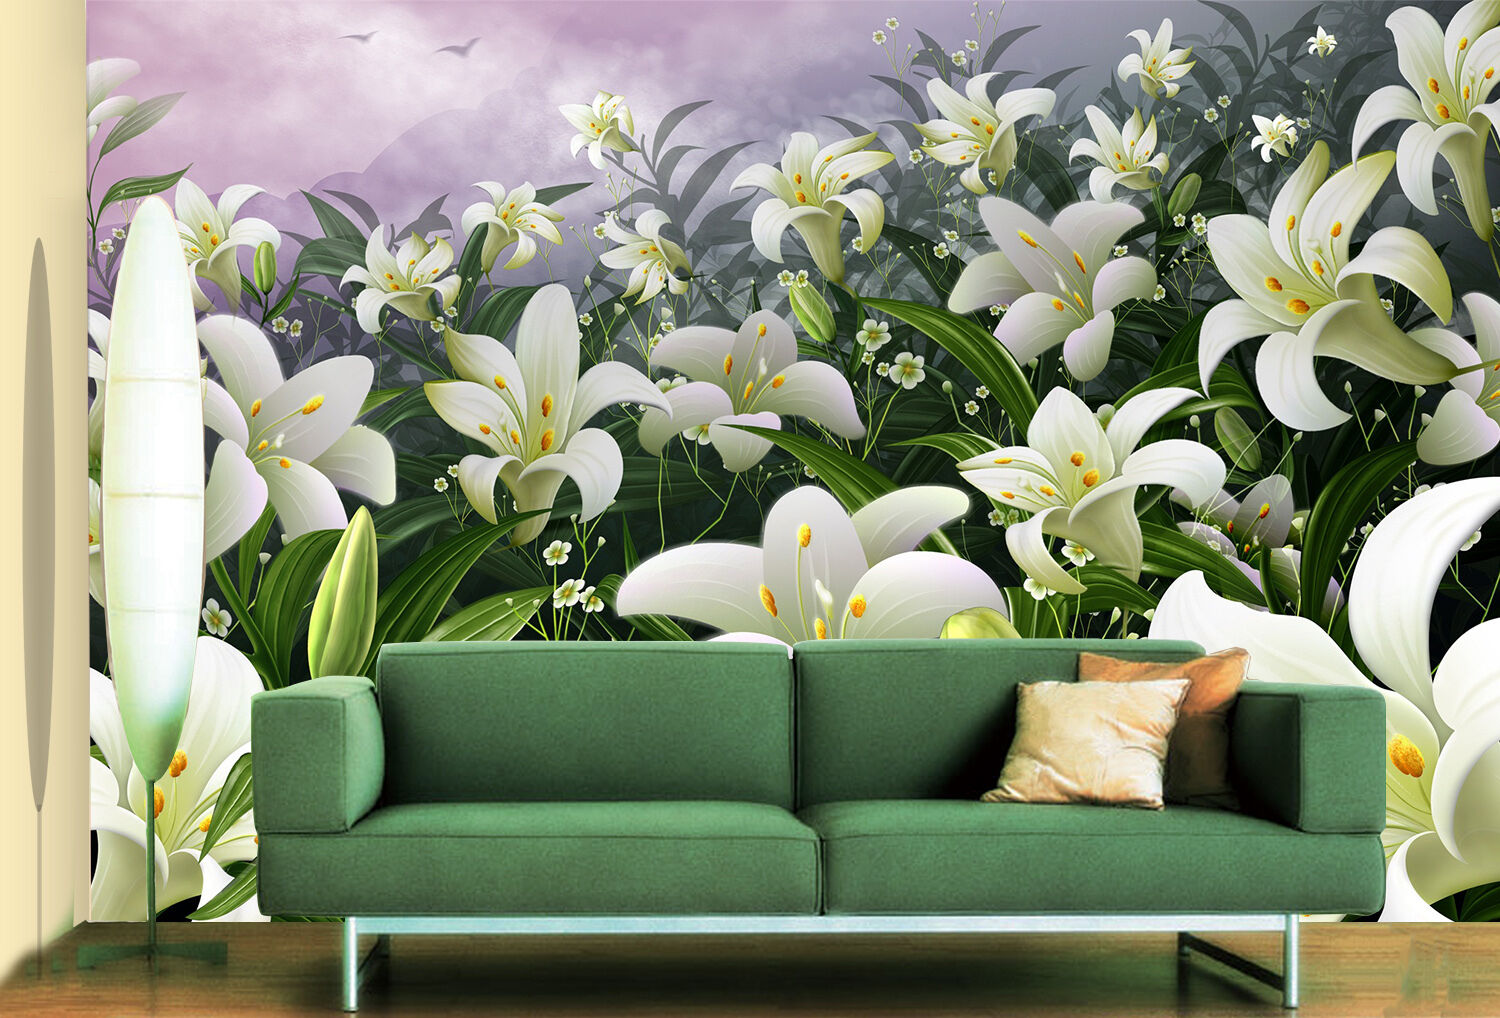 3D Lily Louts Flower 146 Wall Paper Decal Dercor Home Kids Nursery Mural  Home